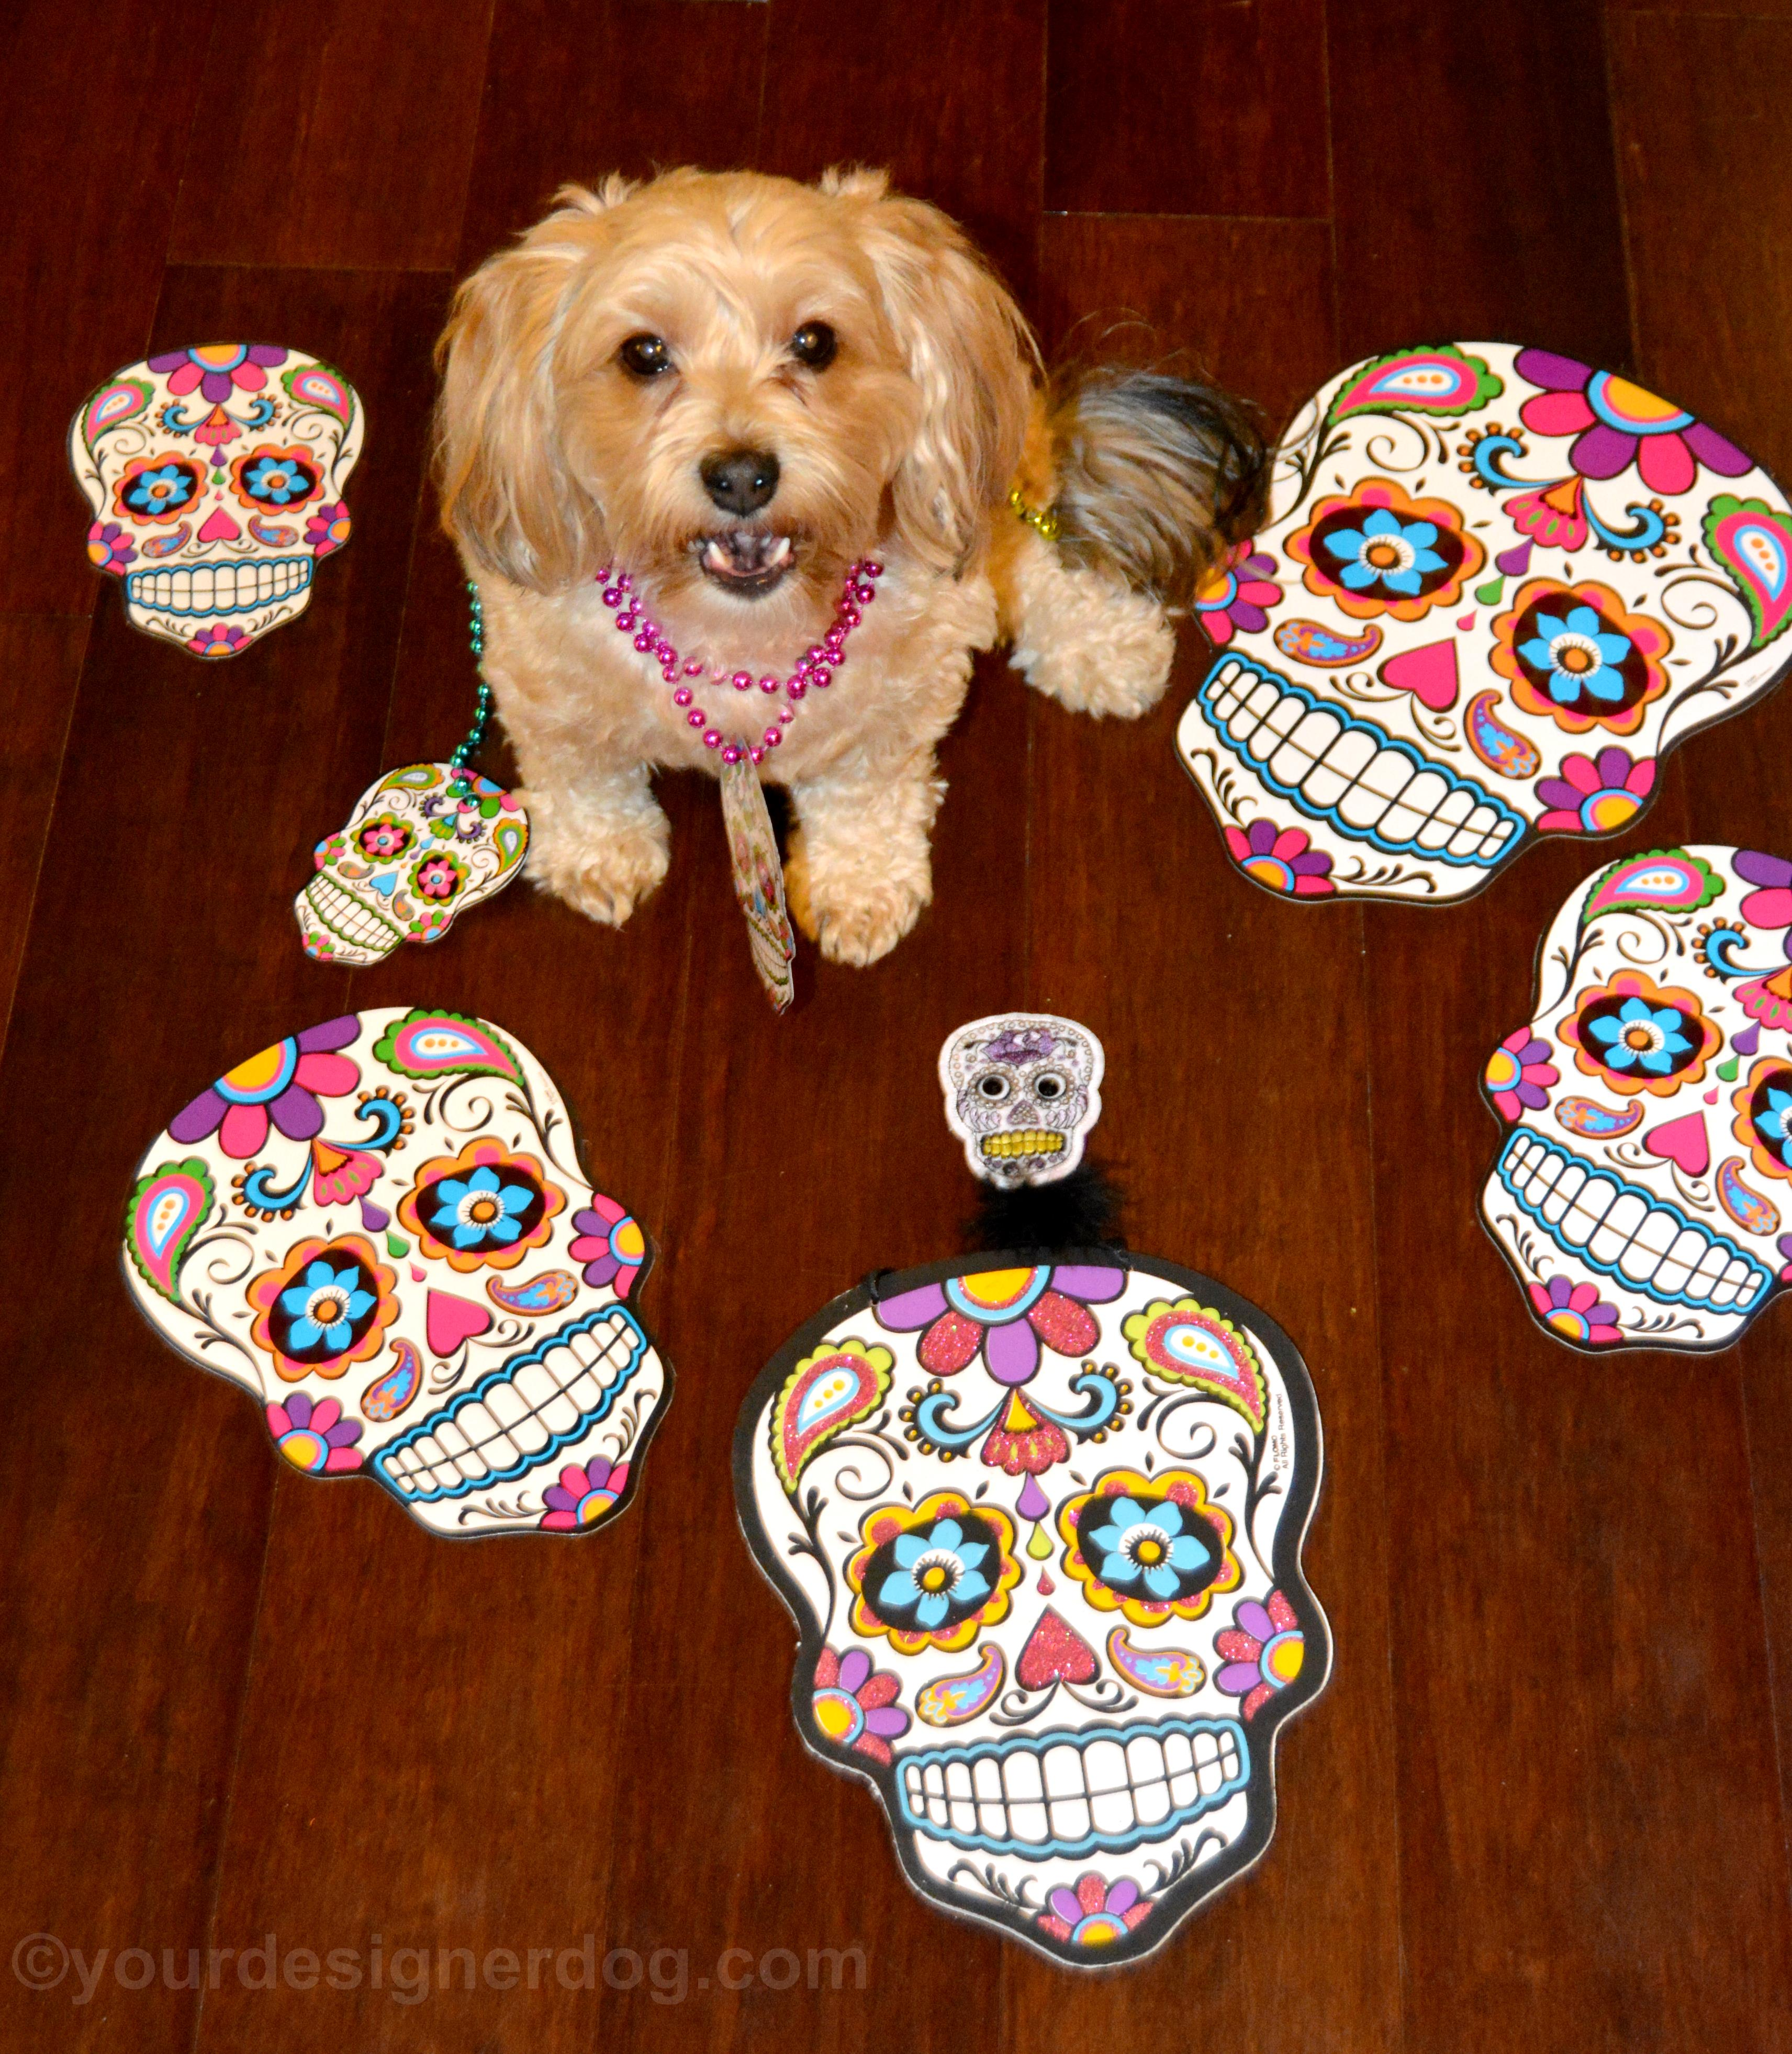 Honoring the Day of the Dead